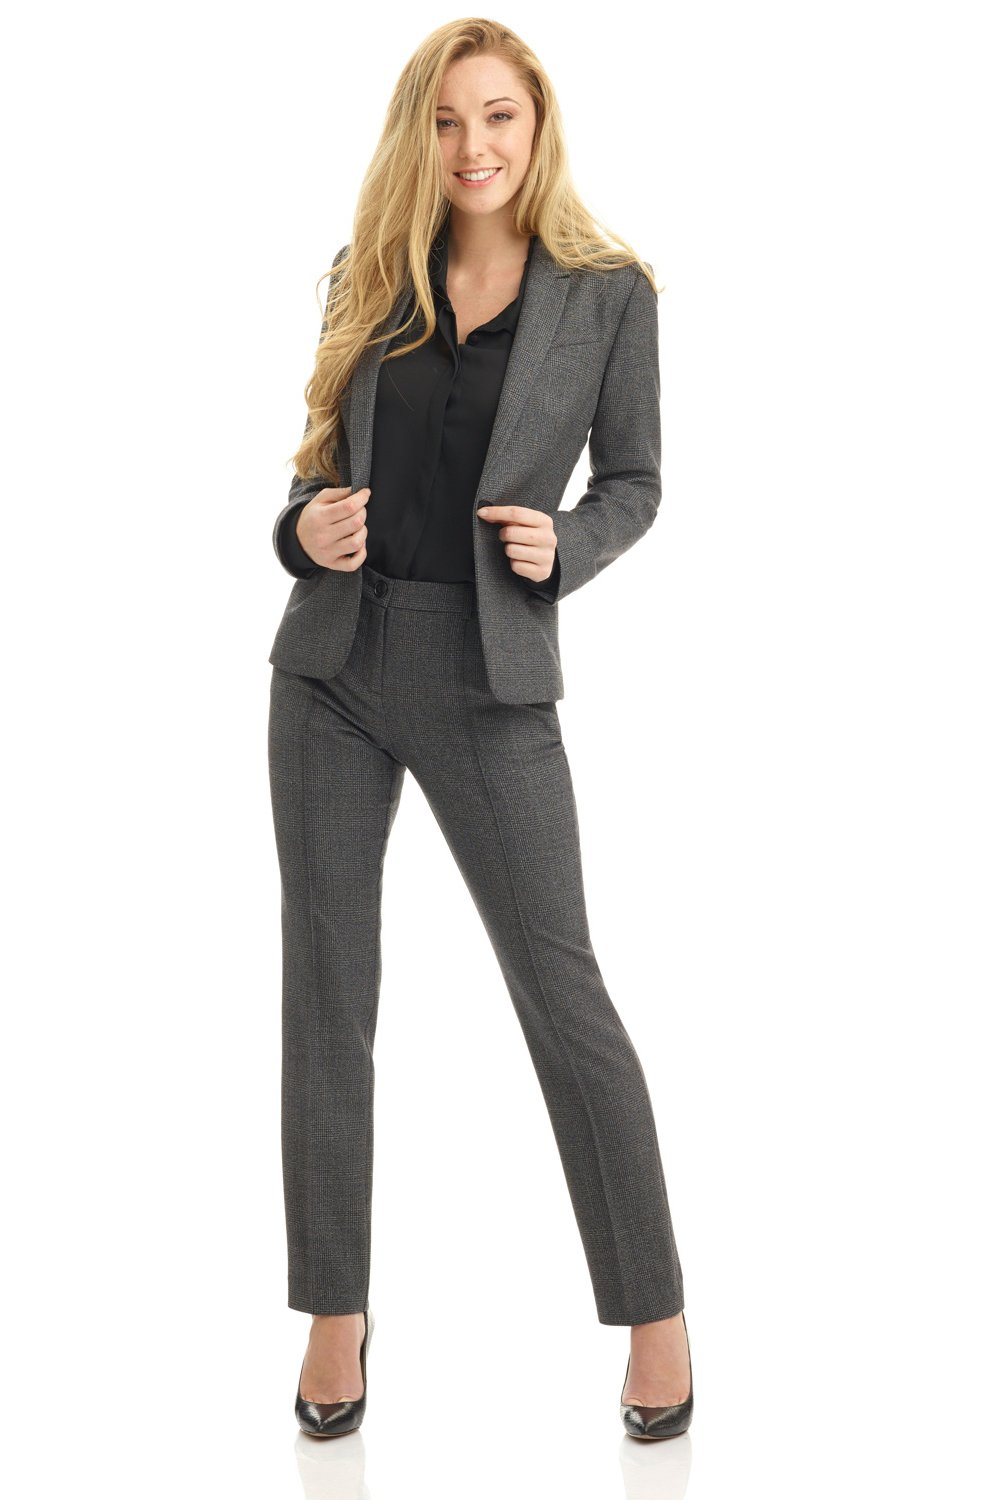 Rekucci Collection Women's Stretch Wool Tailored Pants (16,Grey Glencheck) by Rekucci (Image #4)